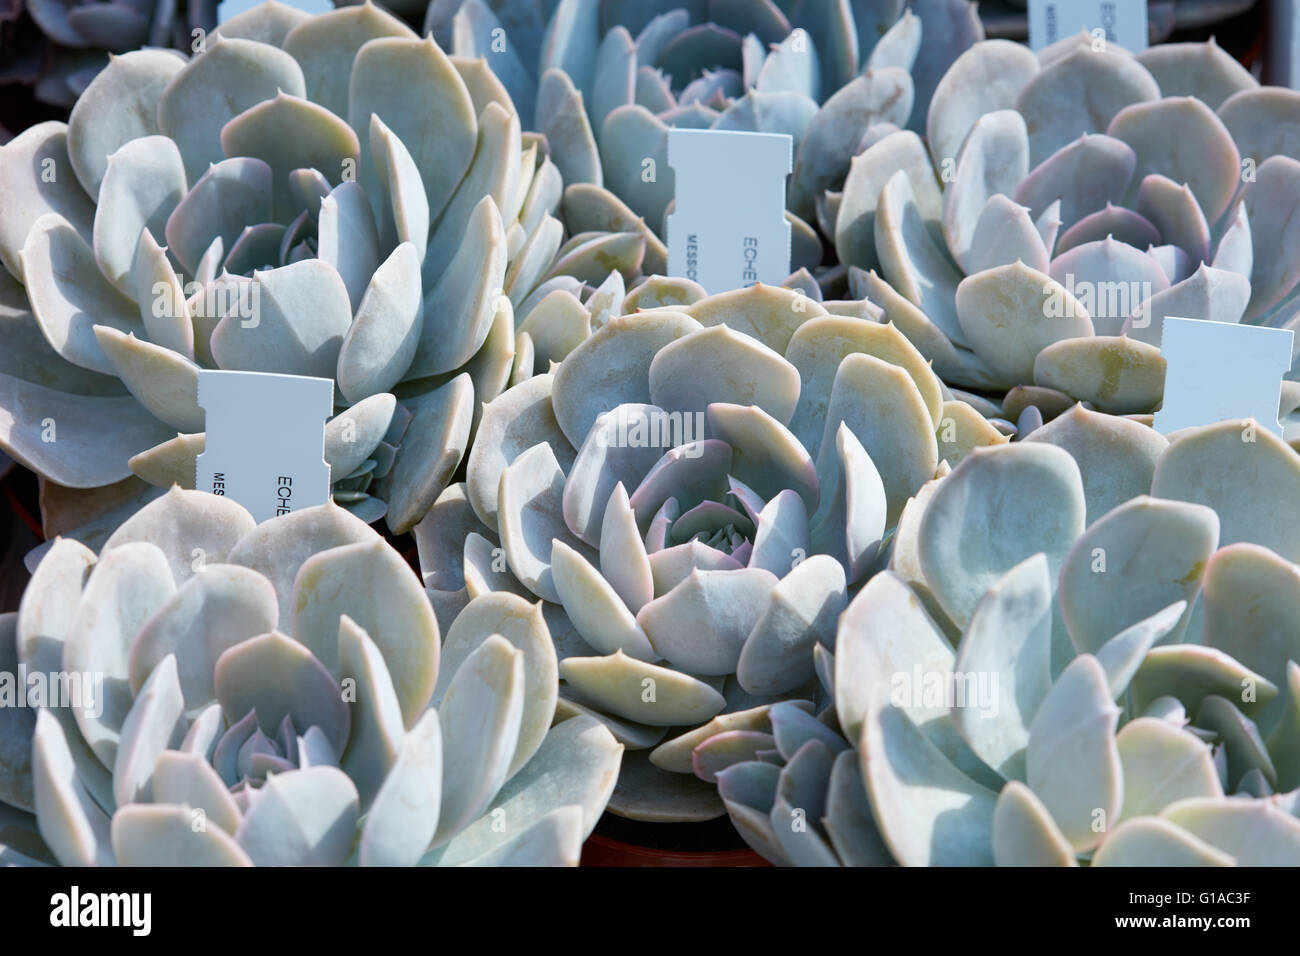 Echeveria, succulent plants with tag in a nursery - Stock Image